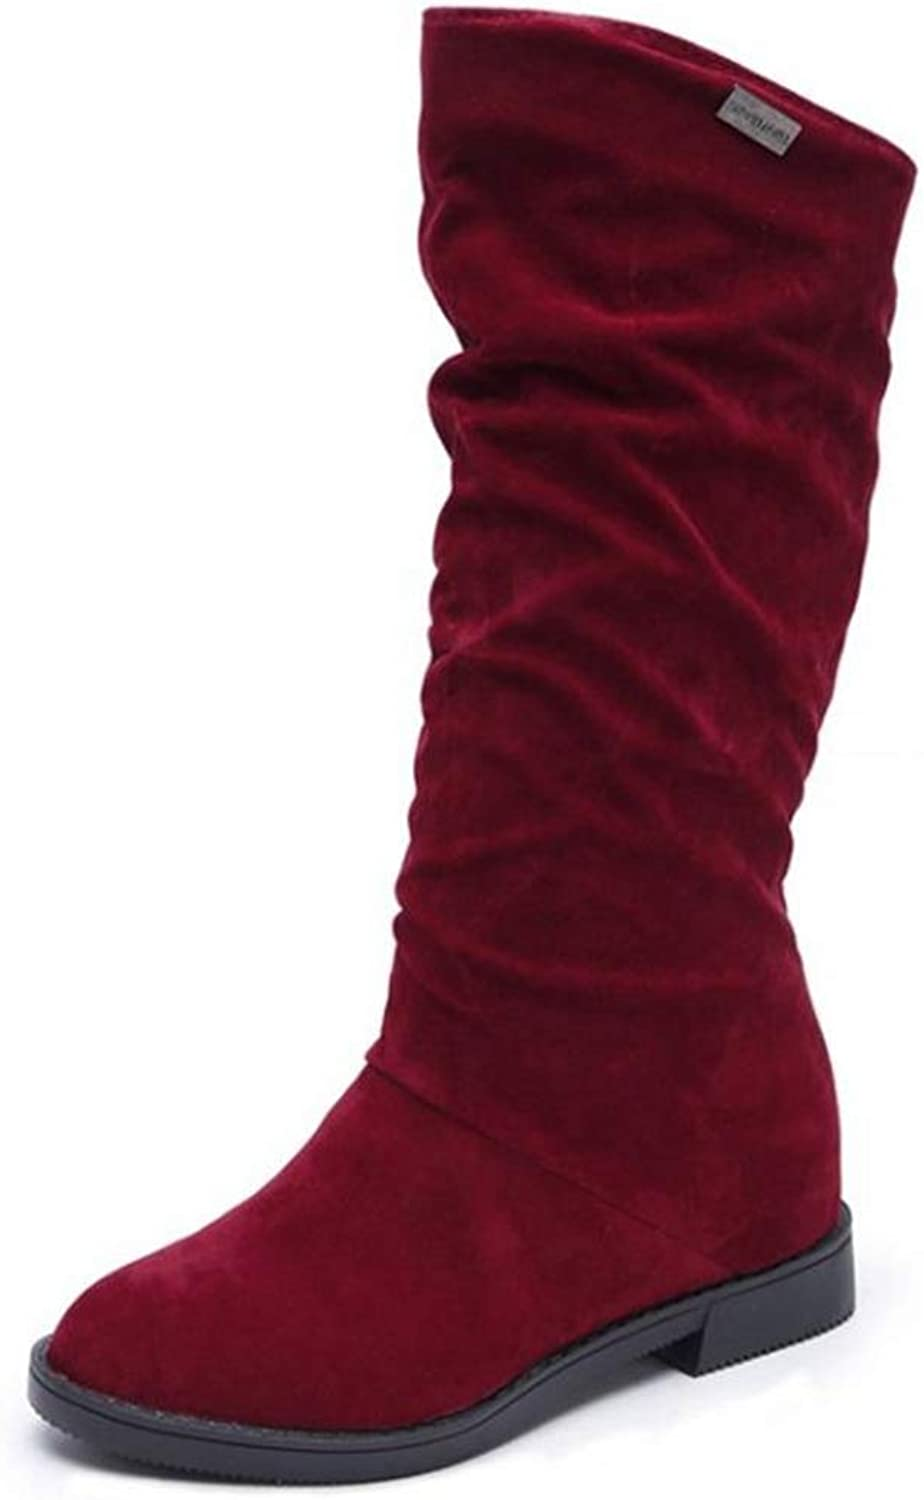 Women's Mid-Calf Boots Women Flats Round Toe Simple Classic shoes Waterproof Casual Snow Boot